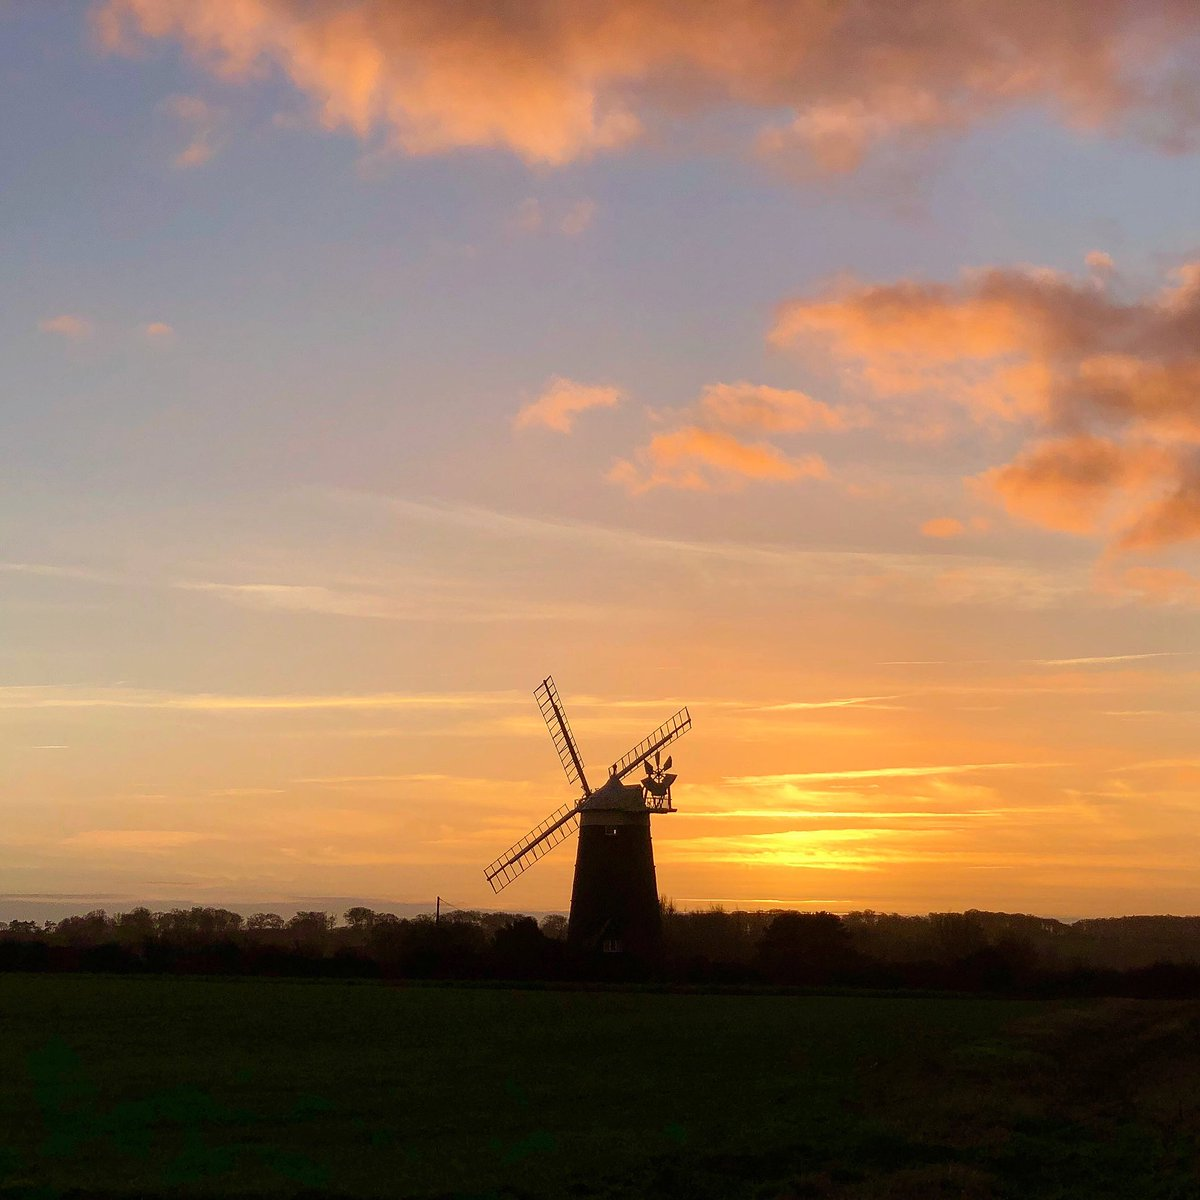 test Twitter Media - Watching the first day of Jan 2019 fade into the evening #norfolk #weather #NewYear2019 #sunset https://t.co/HqvOTCiVDe